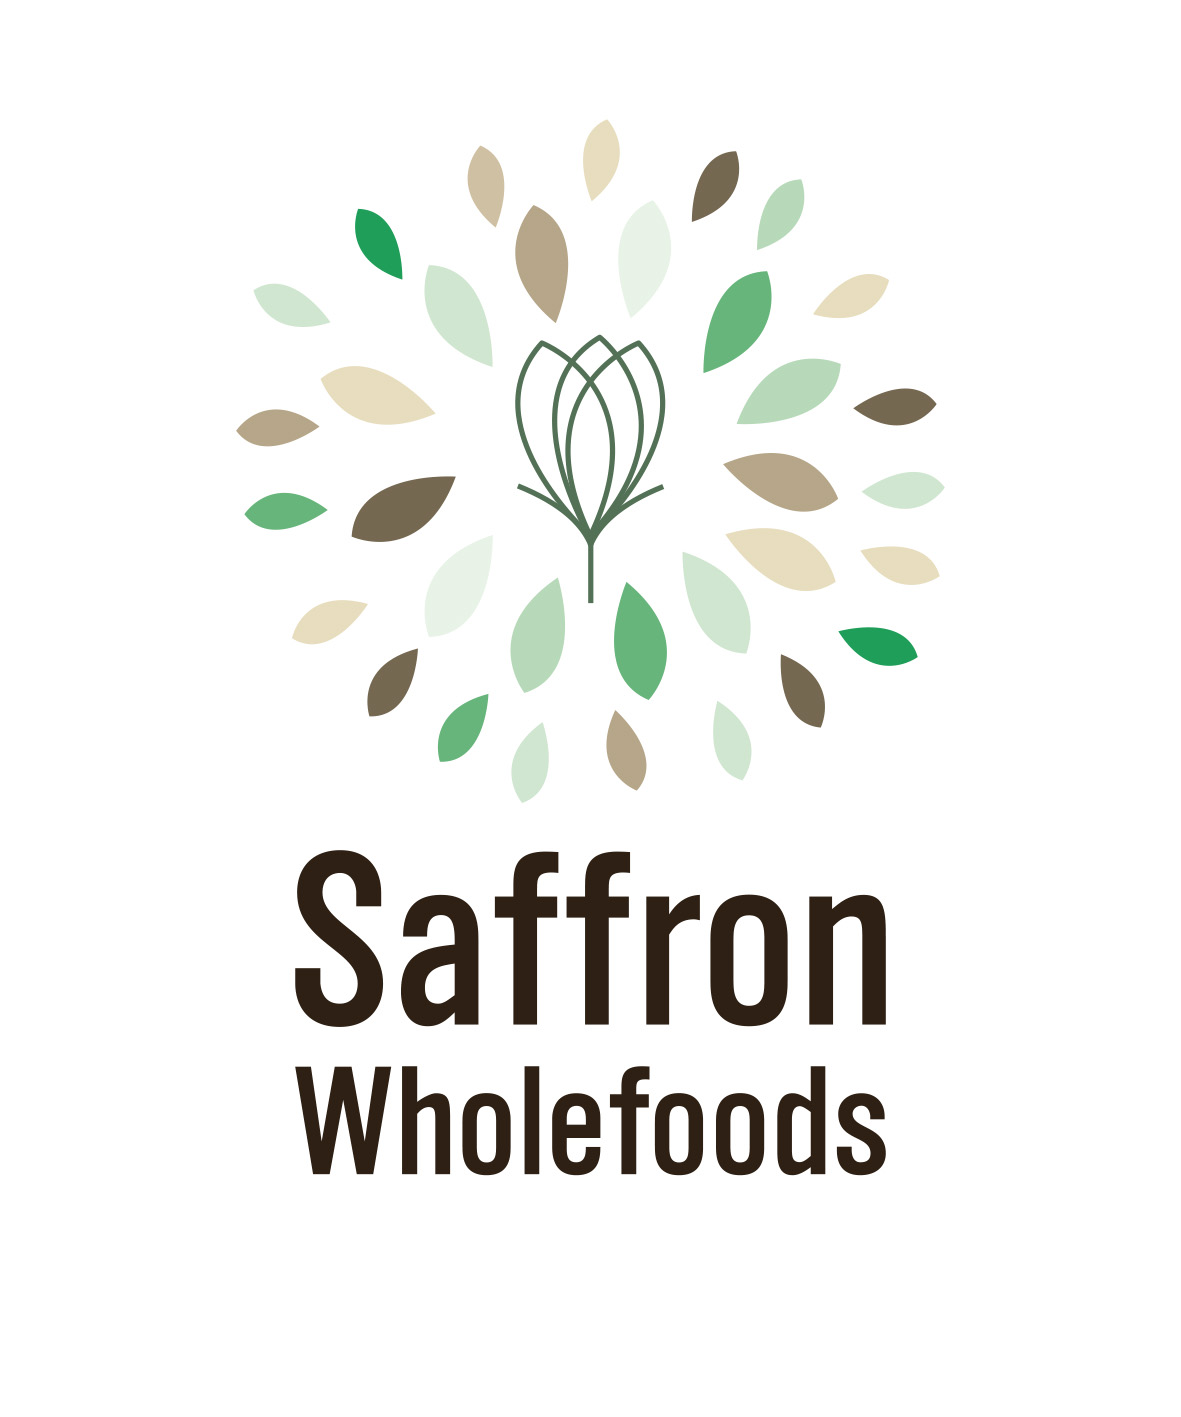 Wholefoods for healthy living and being - Every Tuesday and Saturday - Saffron Walden MarketSaffron Walden Town Square